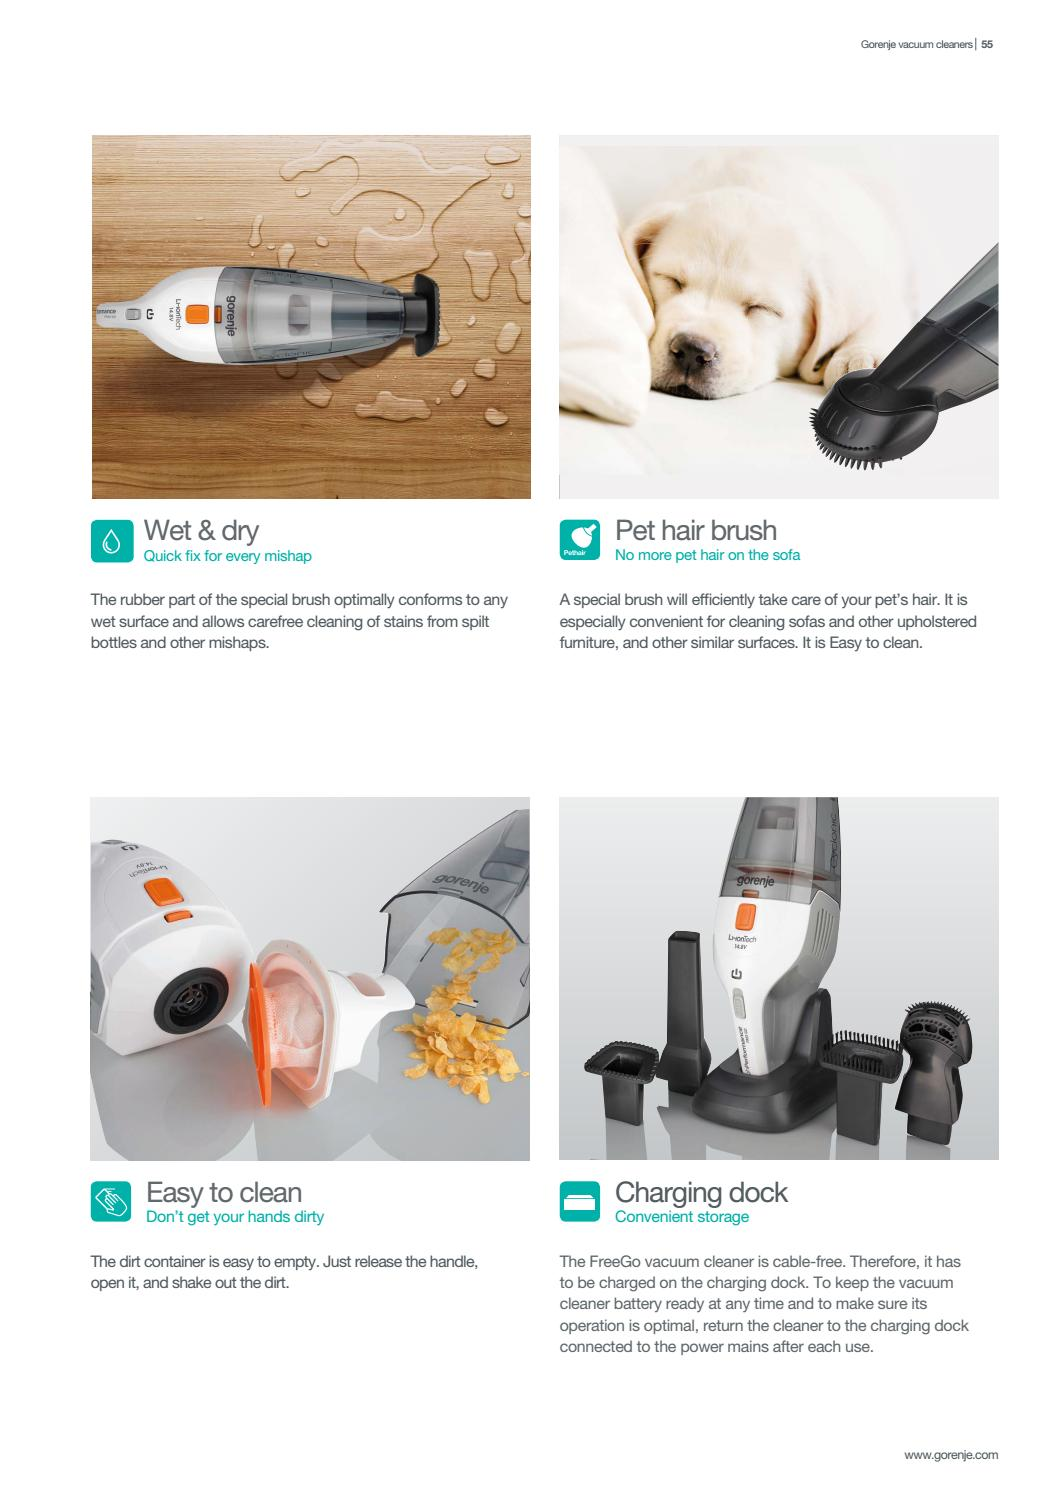 Sofa Vacuum Cleaner Brush Gorenje Vacuum Cleaners Catalogue 2018 By Gorenje D D Issuu